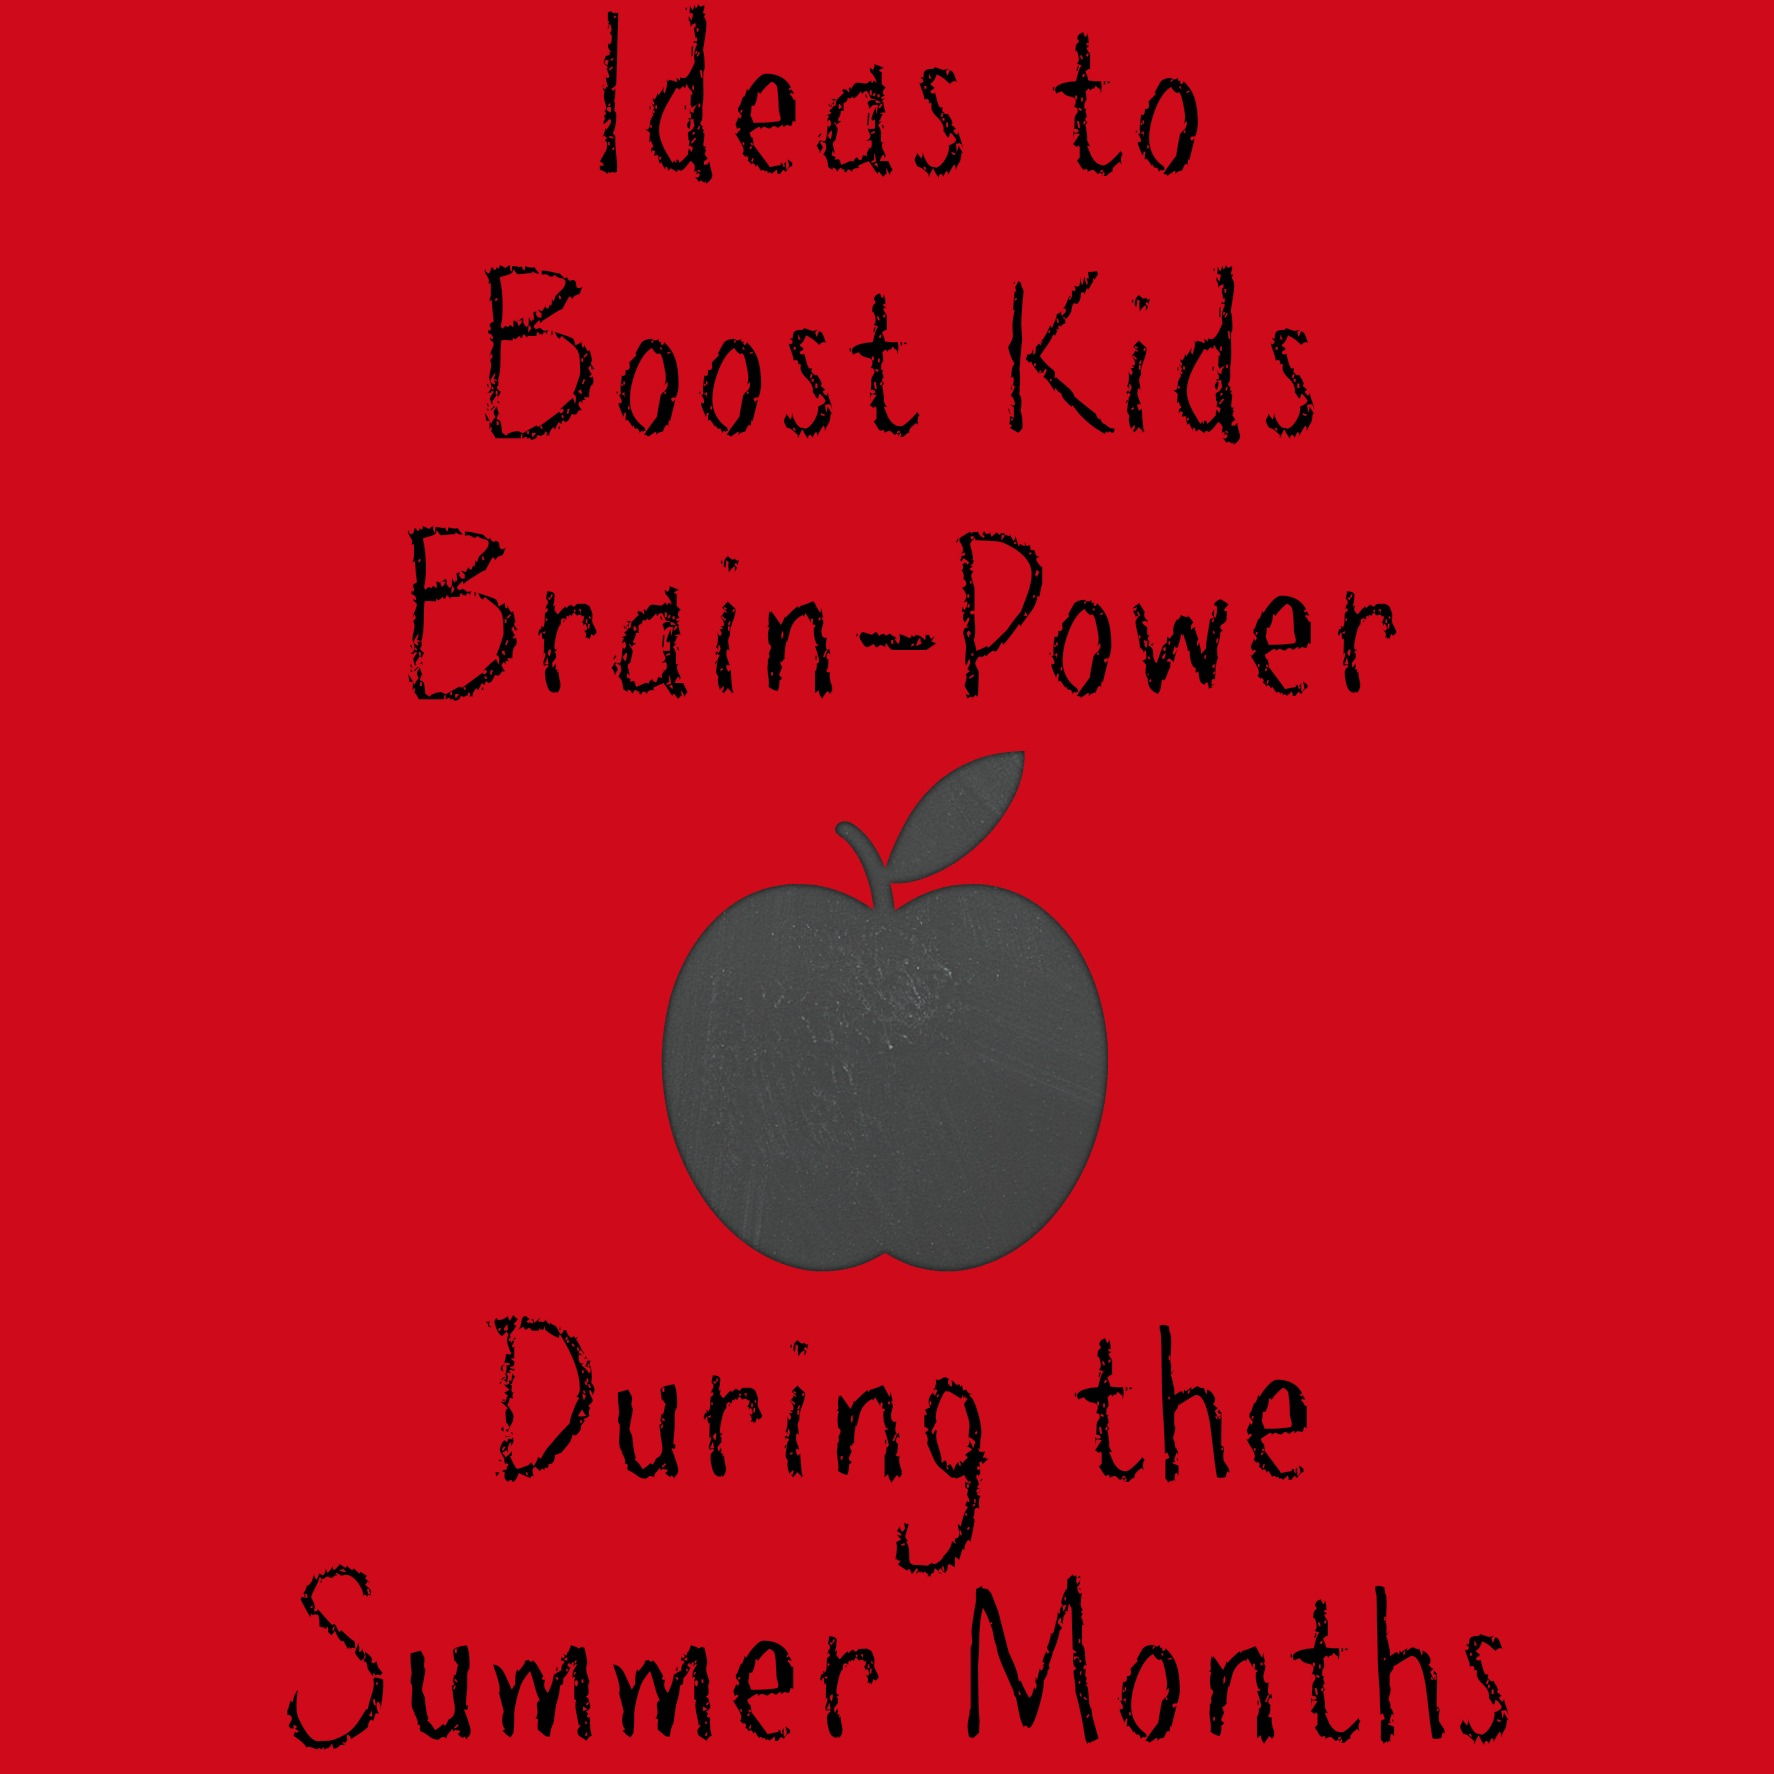 Ideas to Boost Kids Brain-Power During the  Summer Months